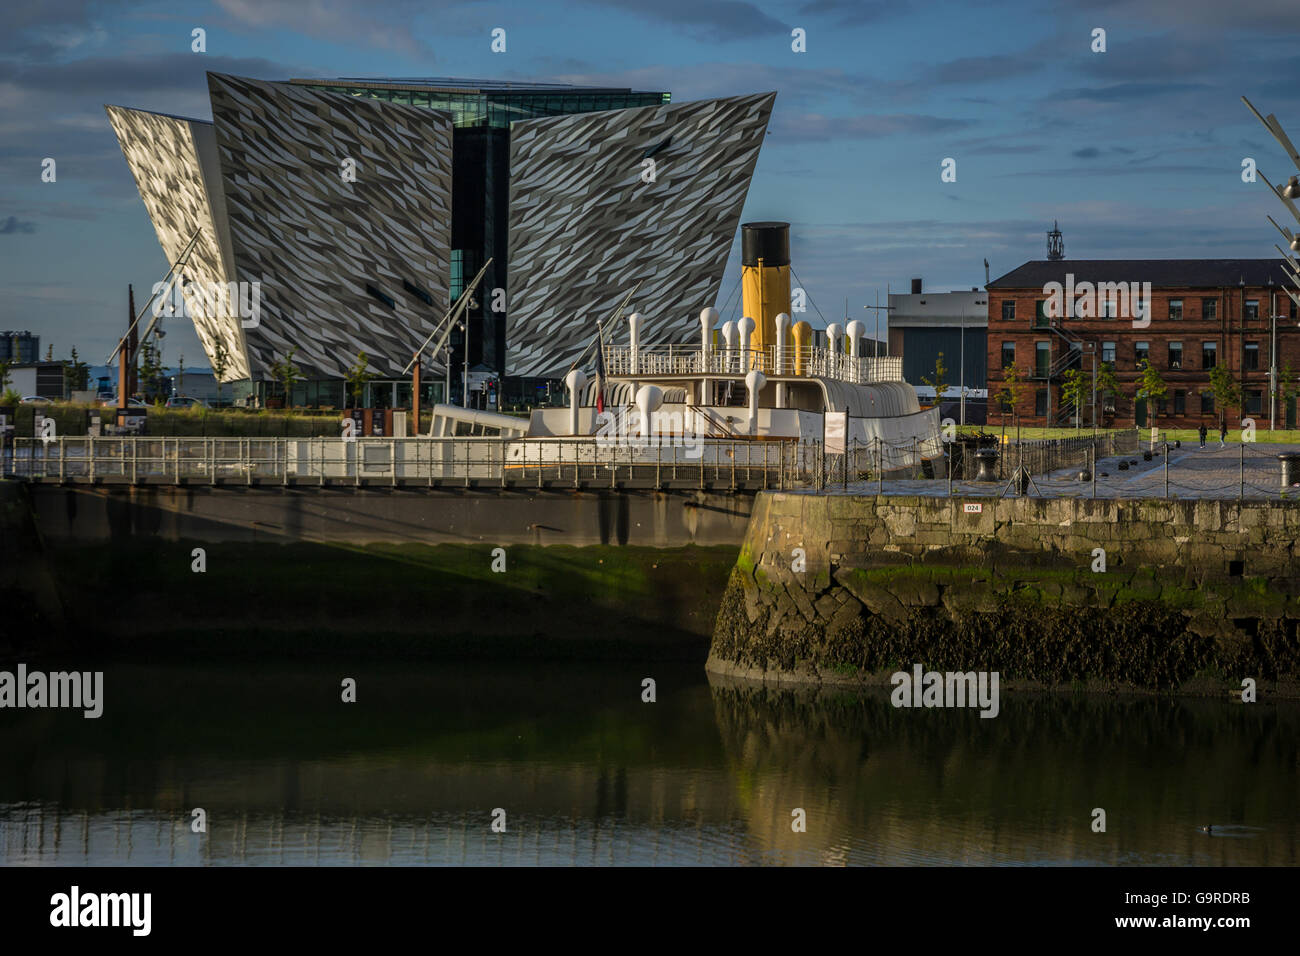 The Titanic Belfast Visitor Experience Centre with SS Nomadic in the foreground - Stock Image